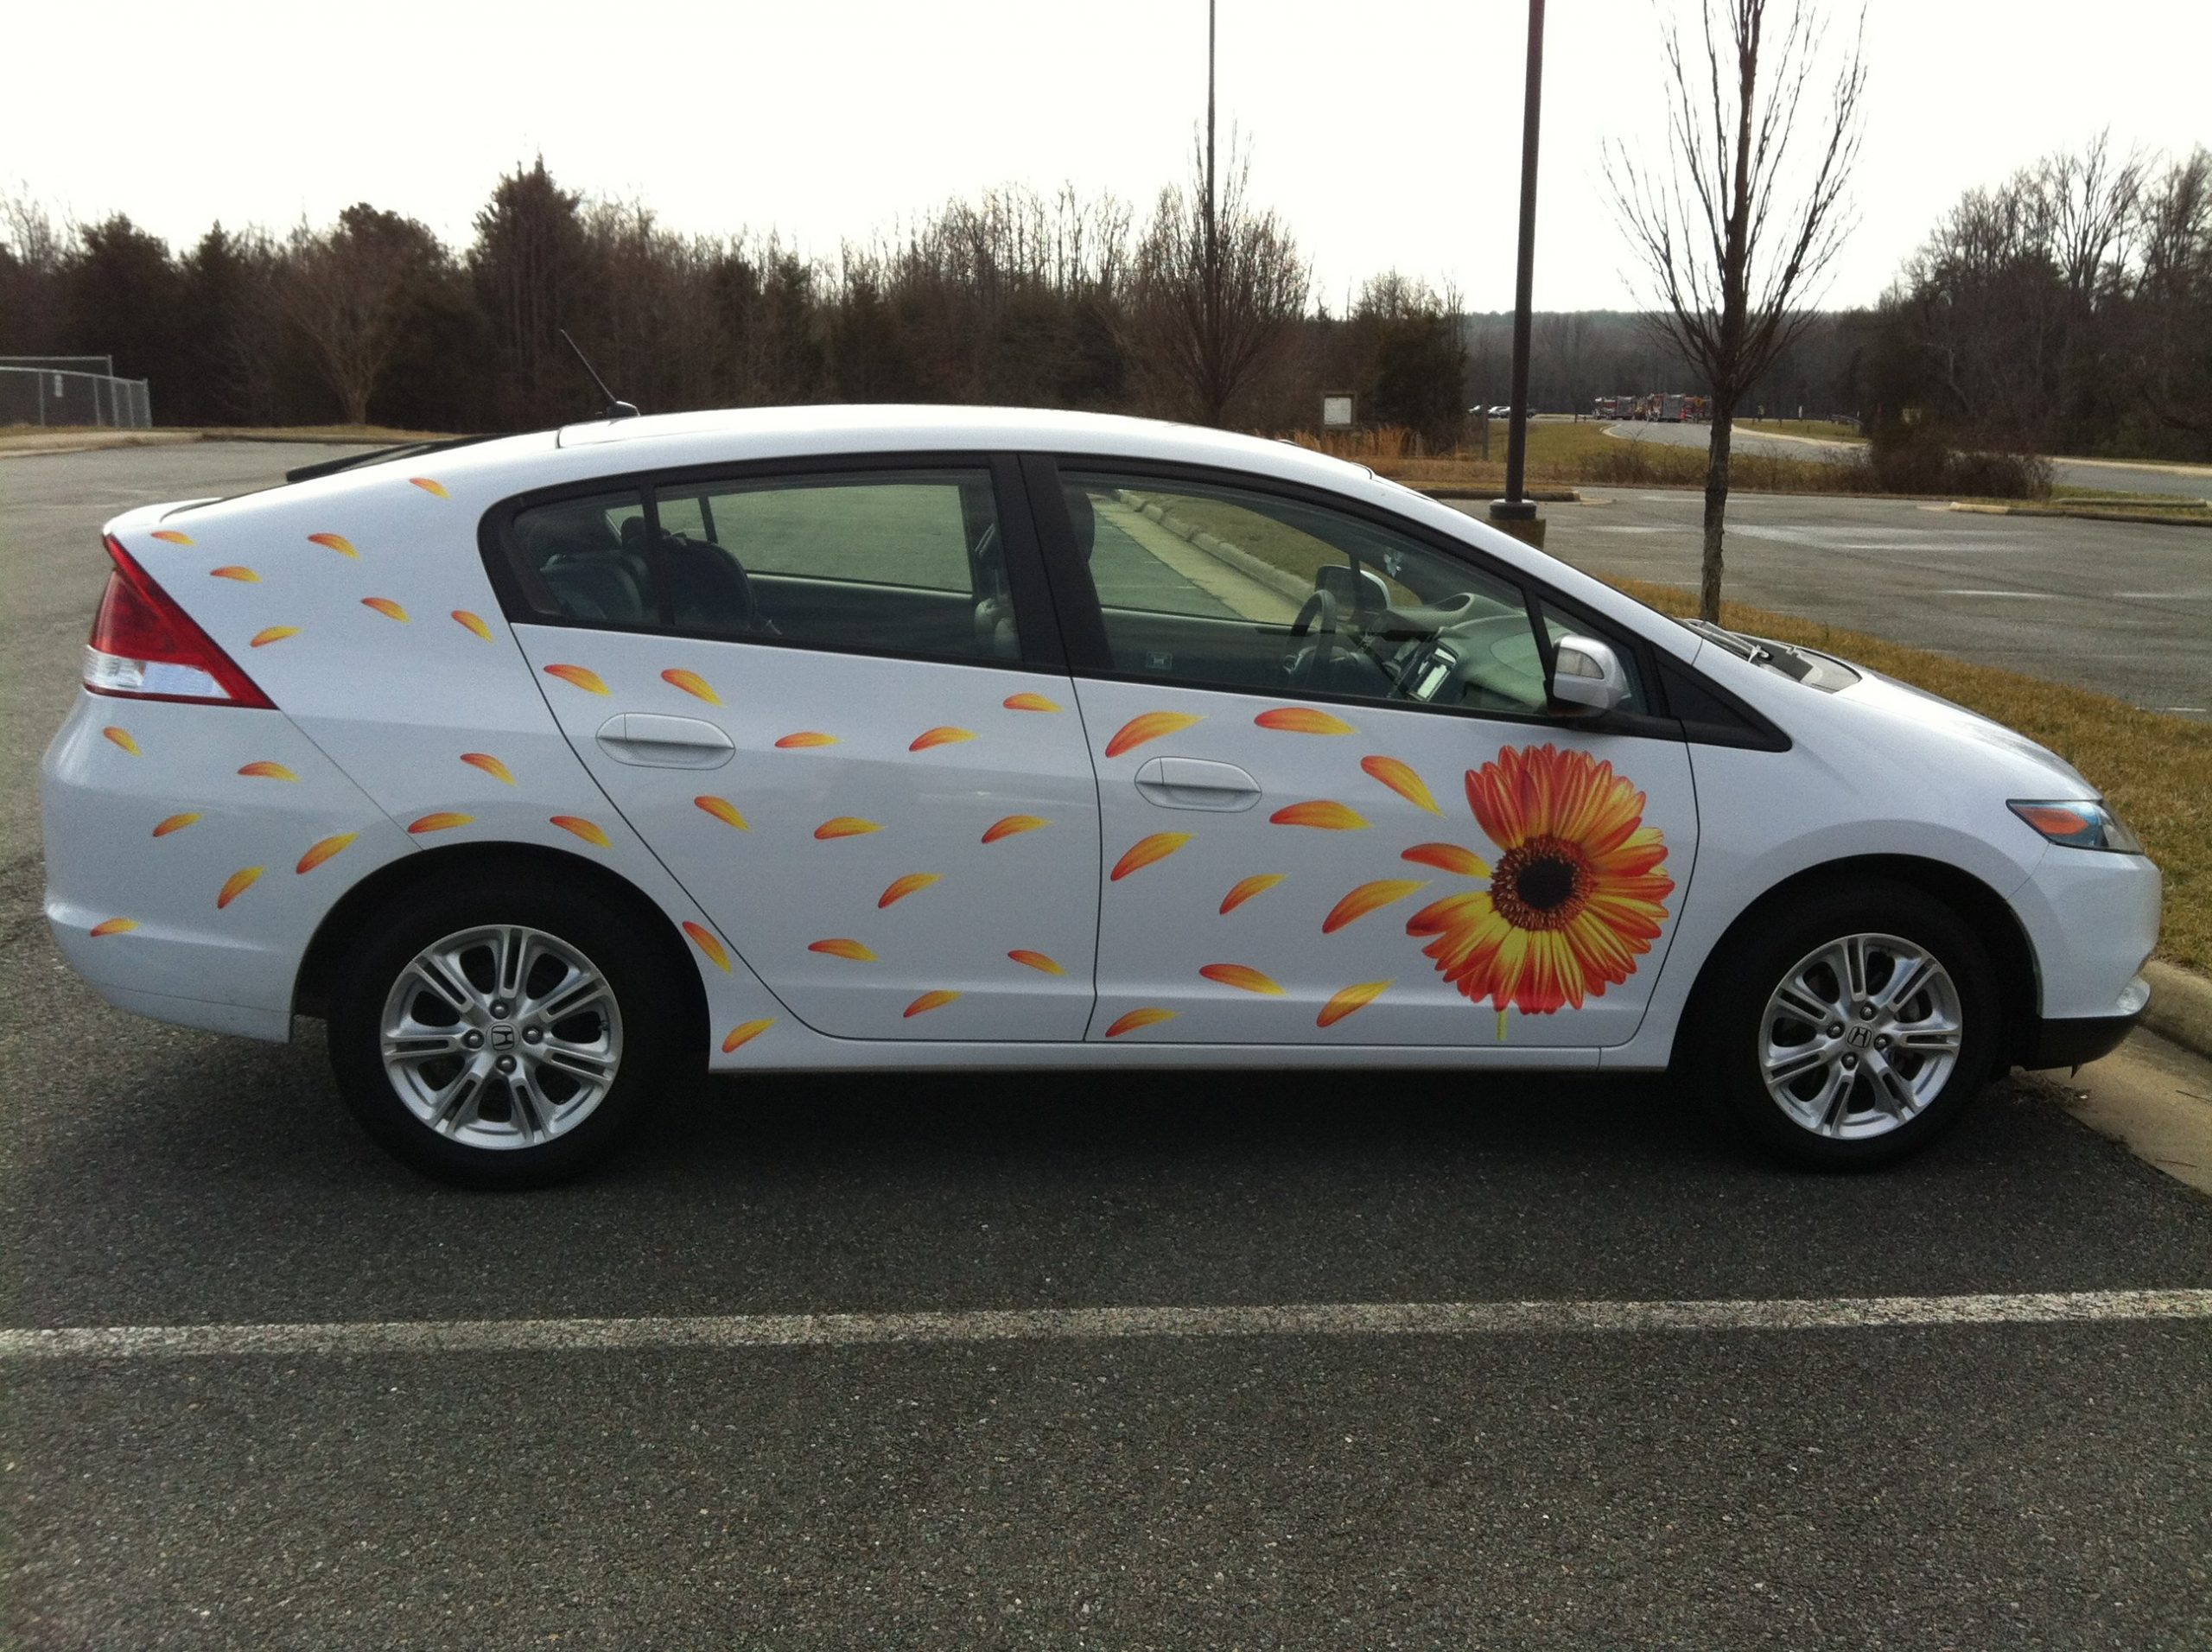 White Honda Hybrid in Parking lot with large flower and petal decal